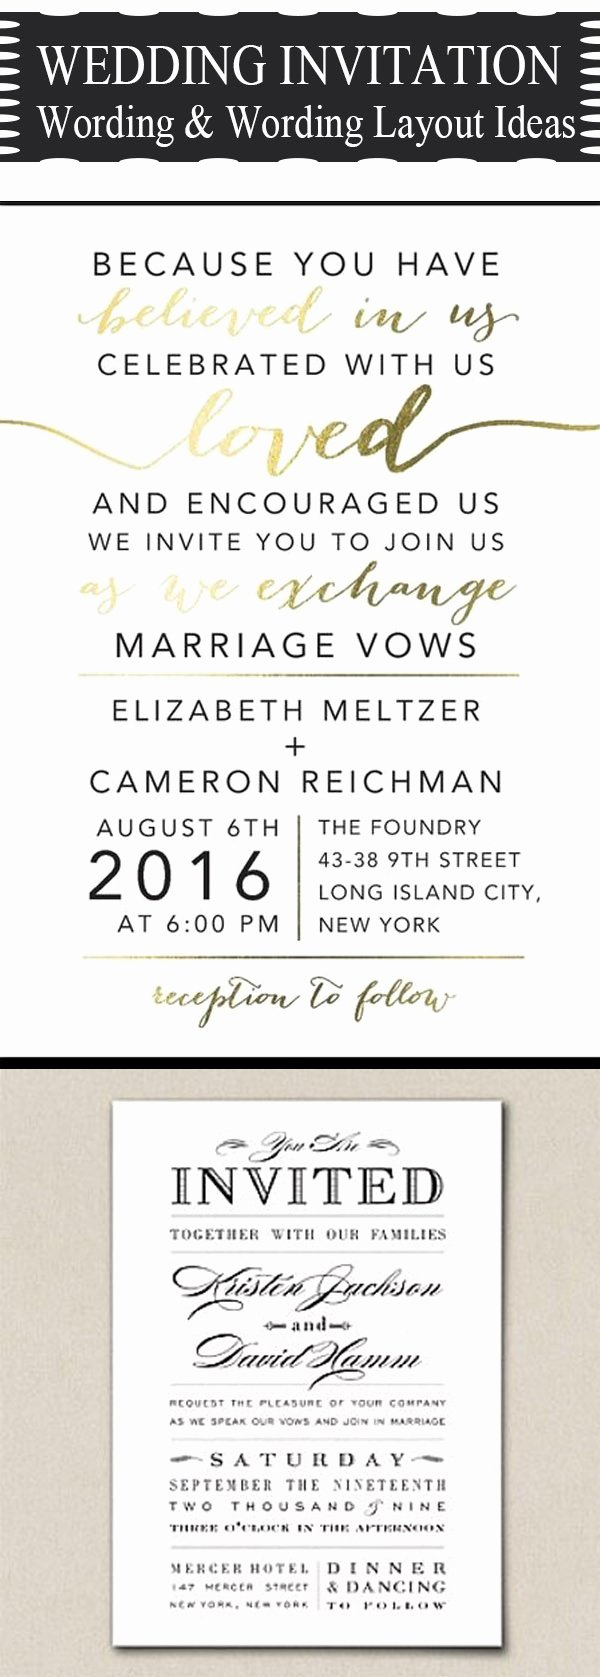 20 Popular Wedding Invitation Wording & Diy Templates